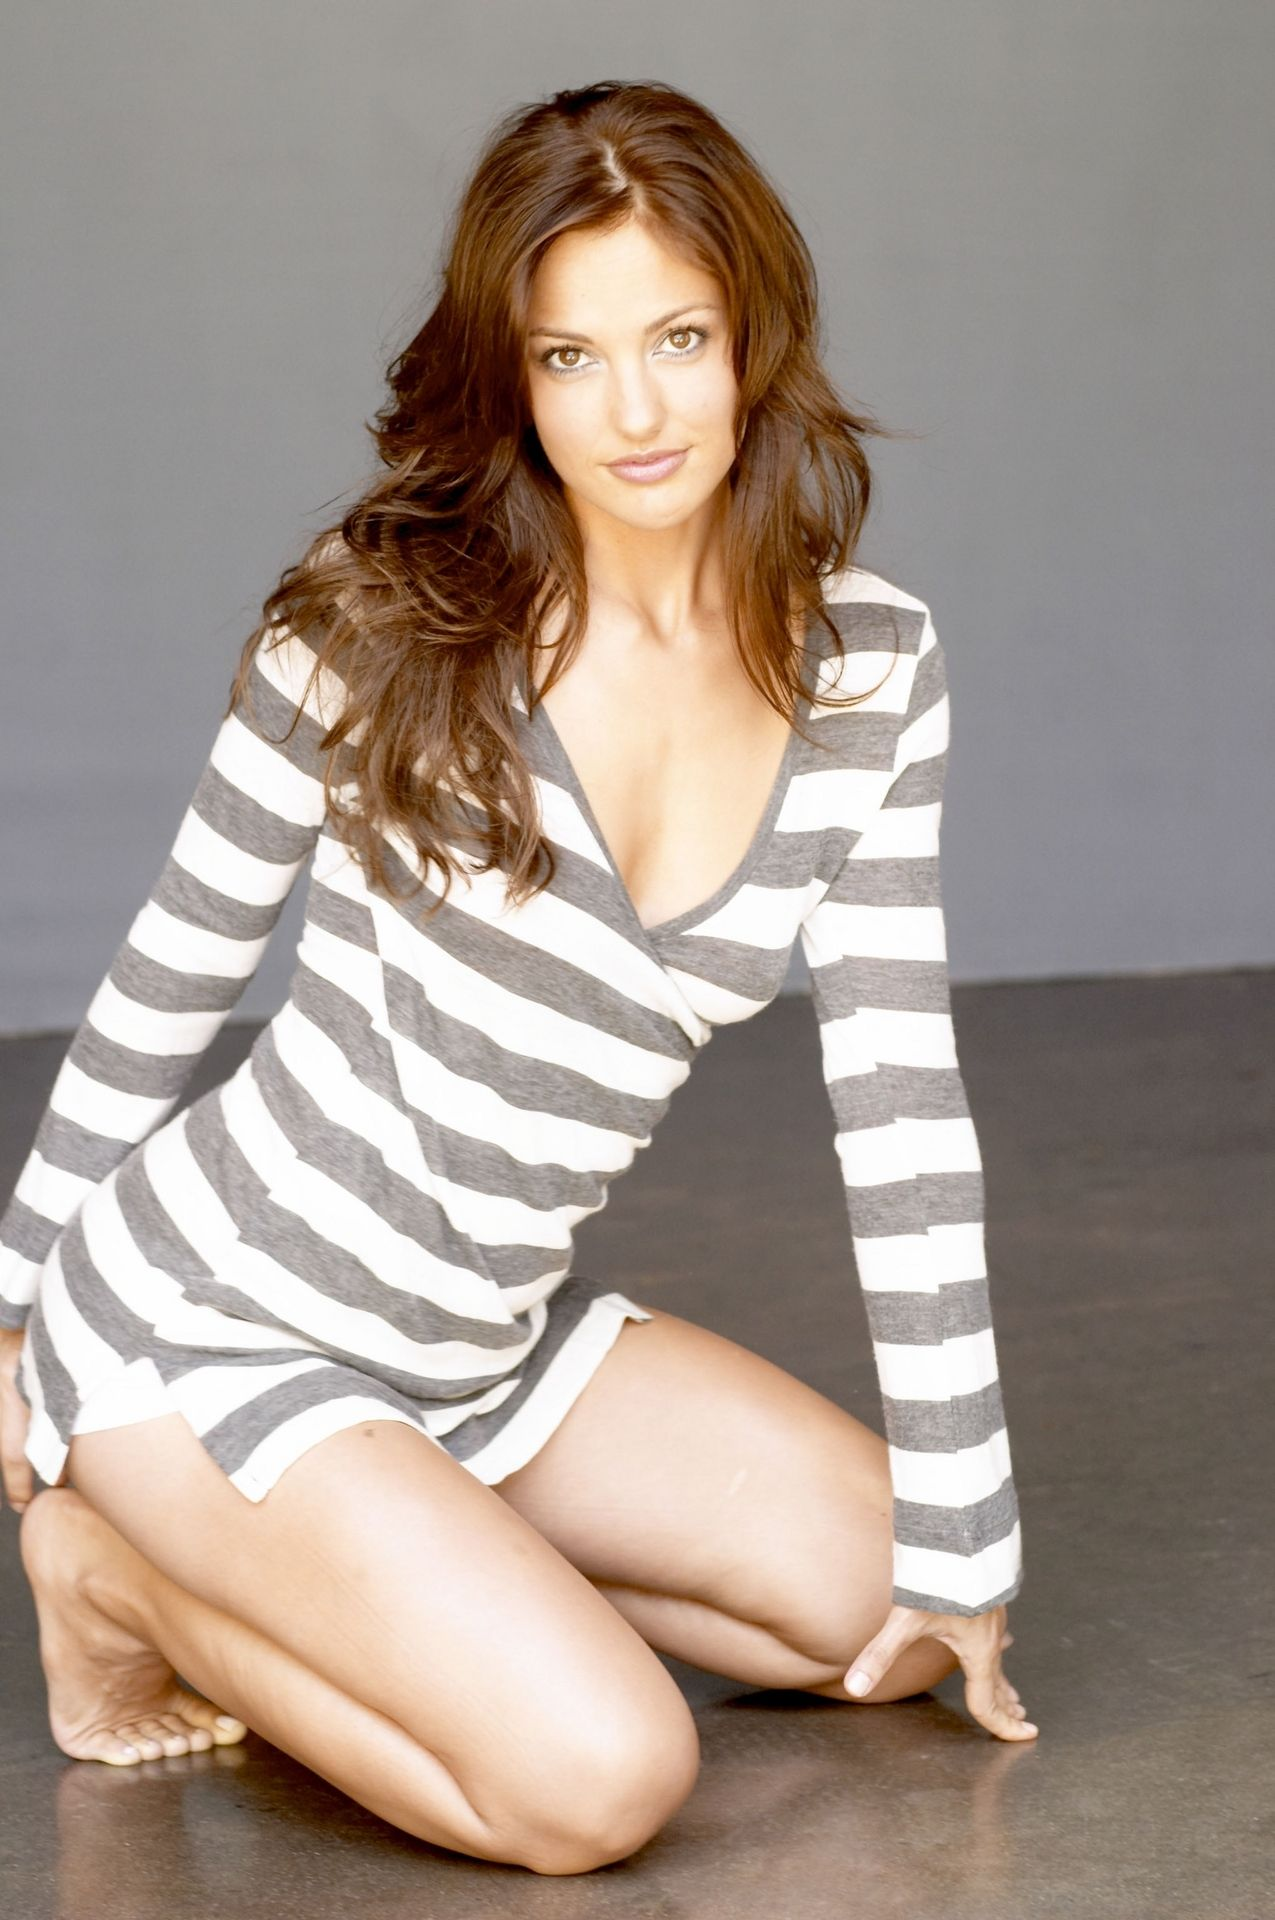 minka kelly gif tumblr